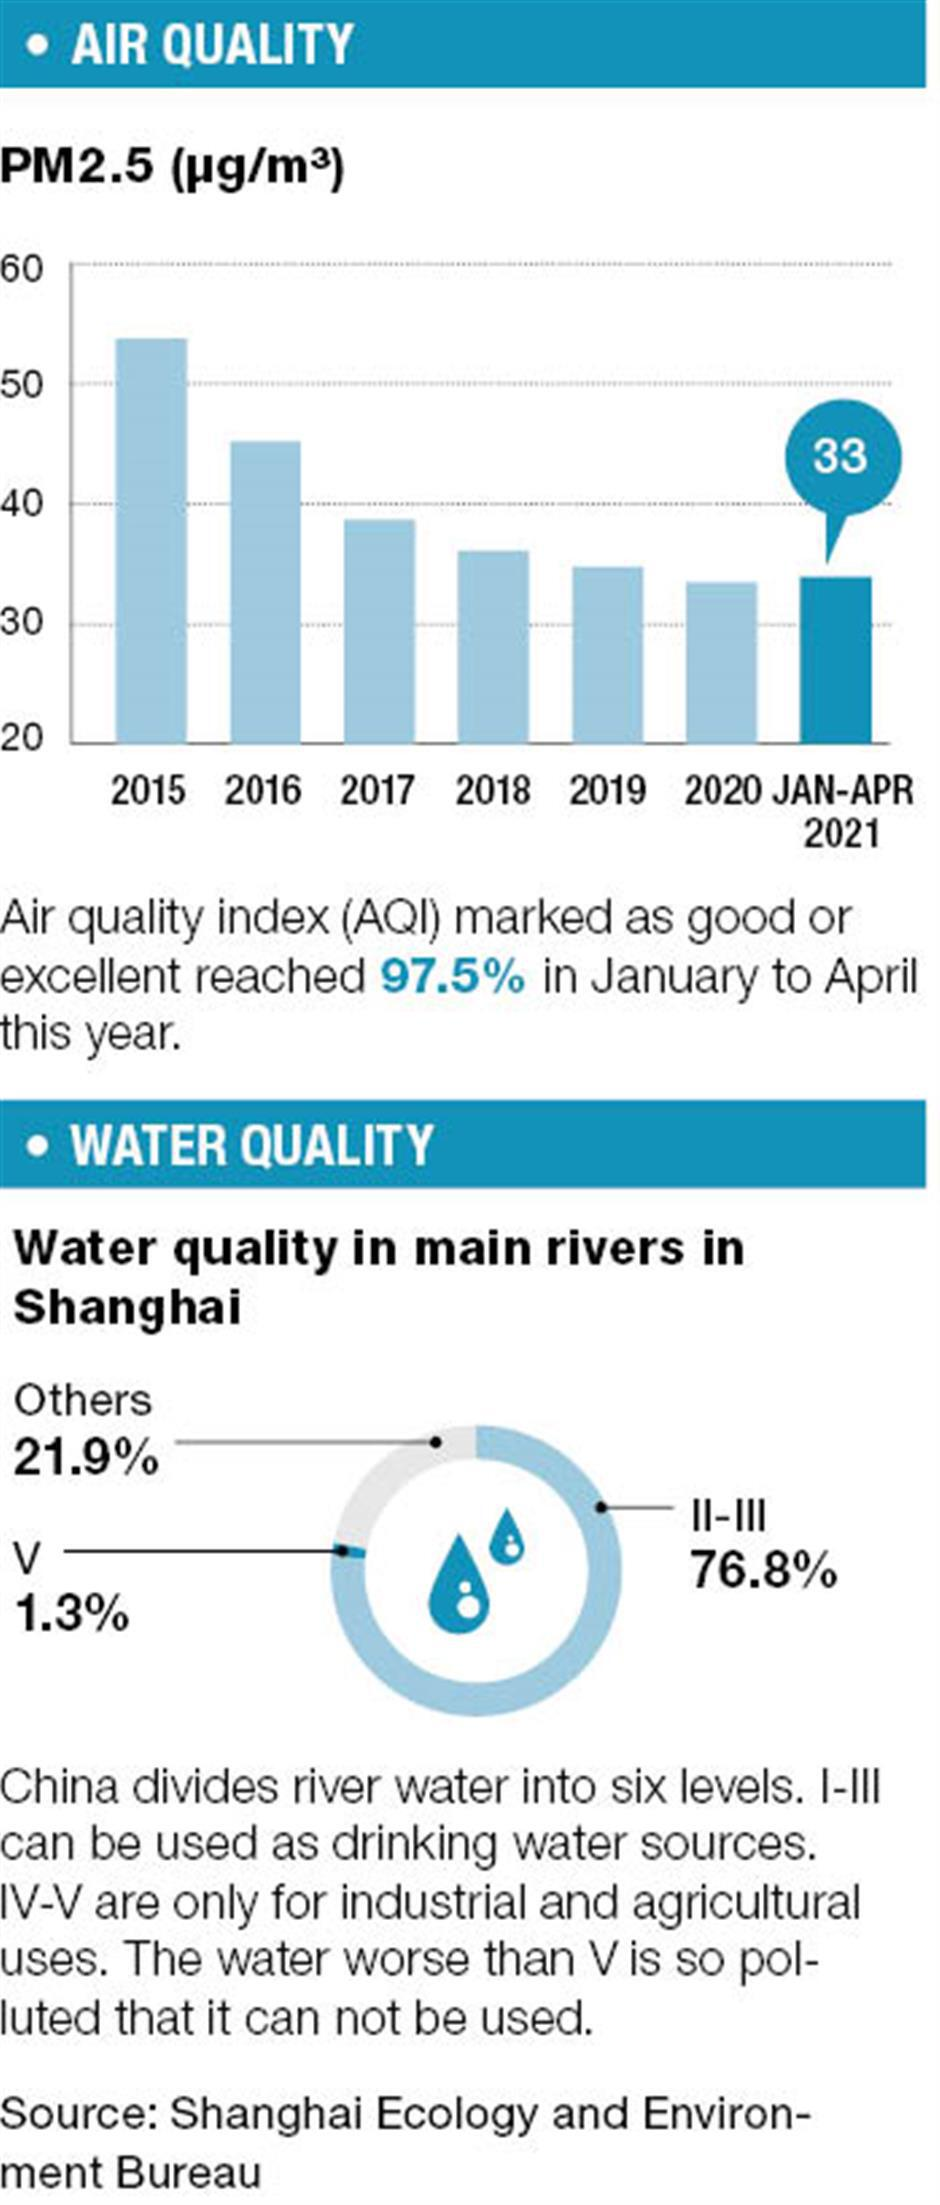 Air, water, green space continue to improve